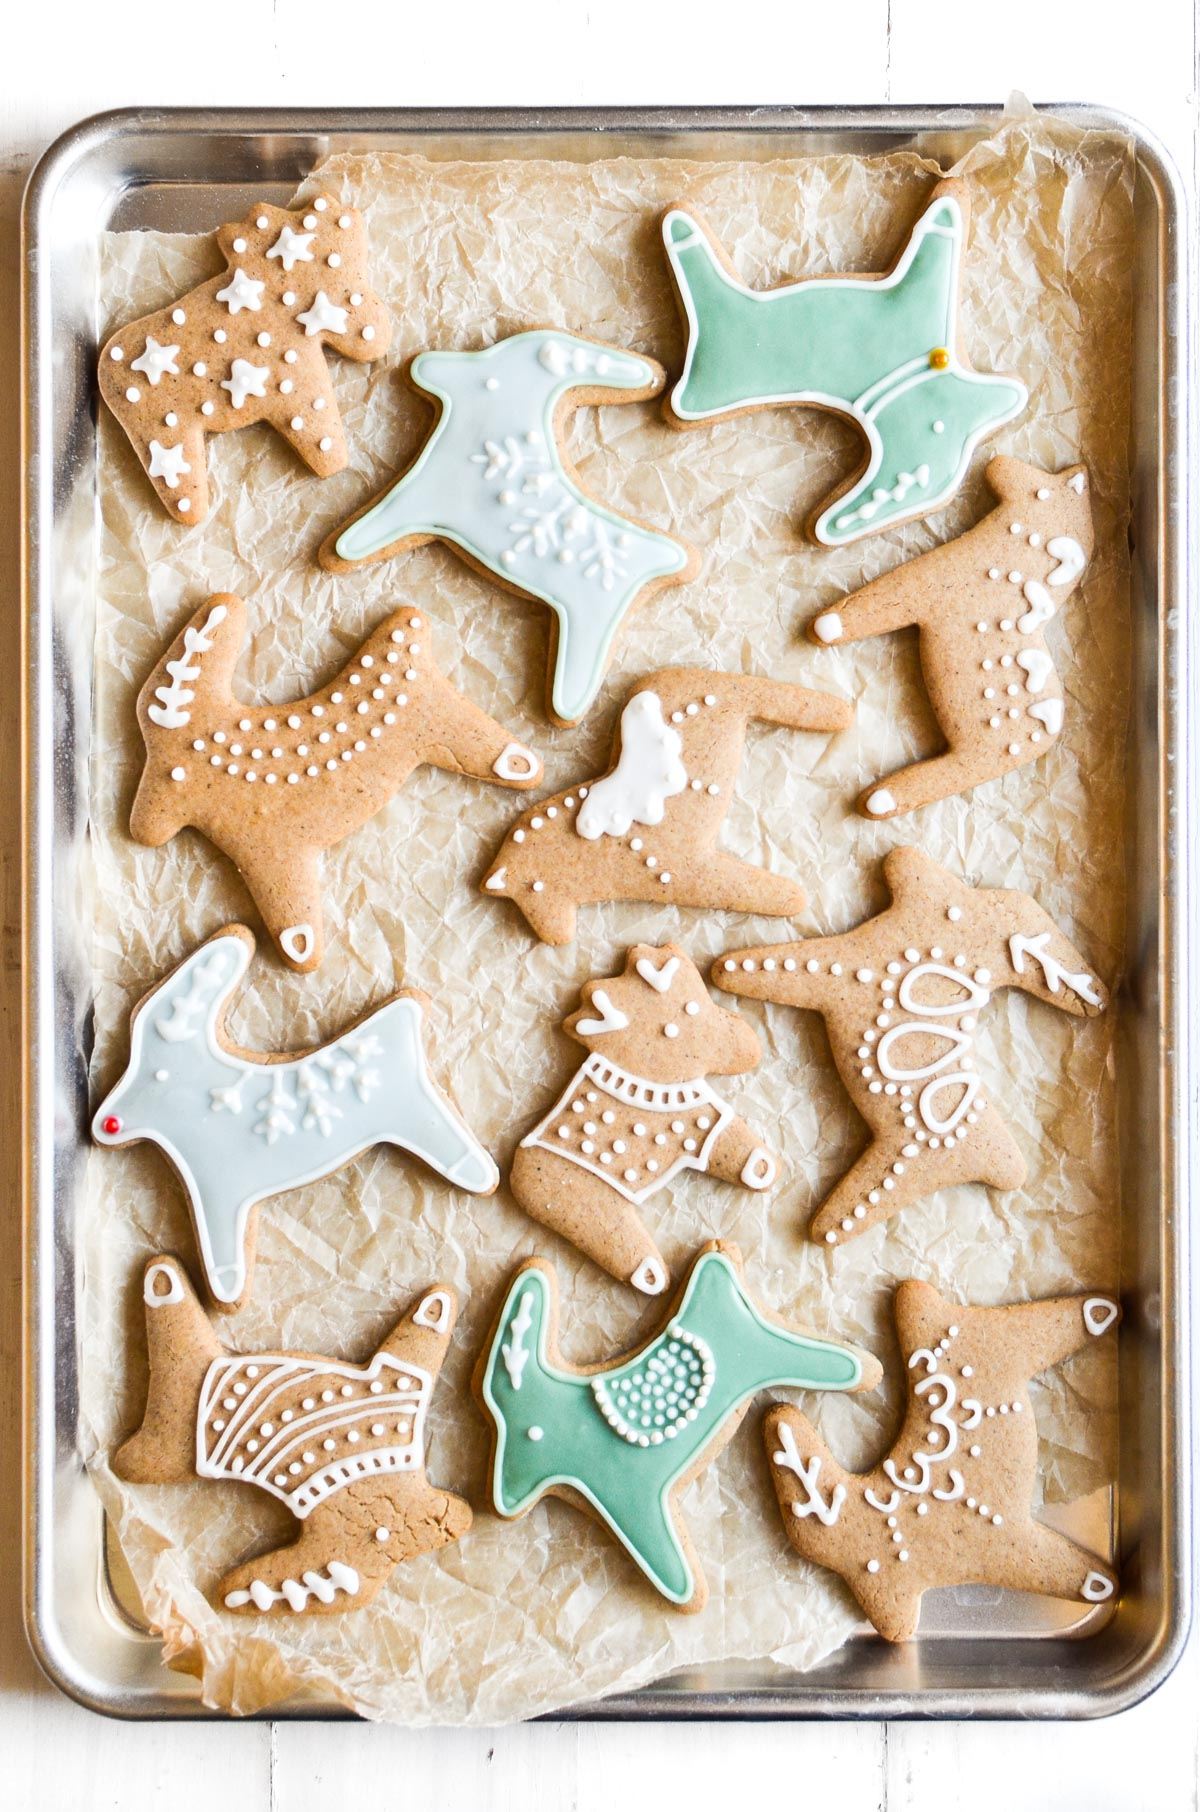 Decorated pepparkakor cookies on a baking sheet.